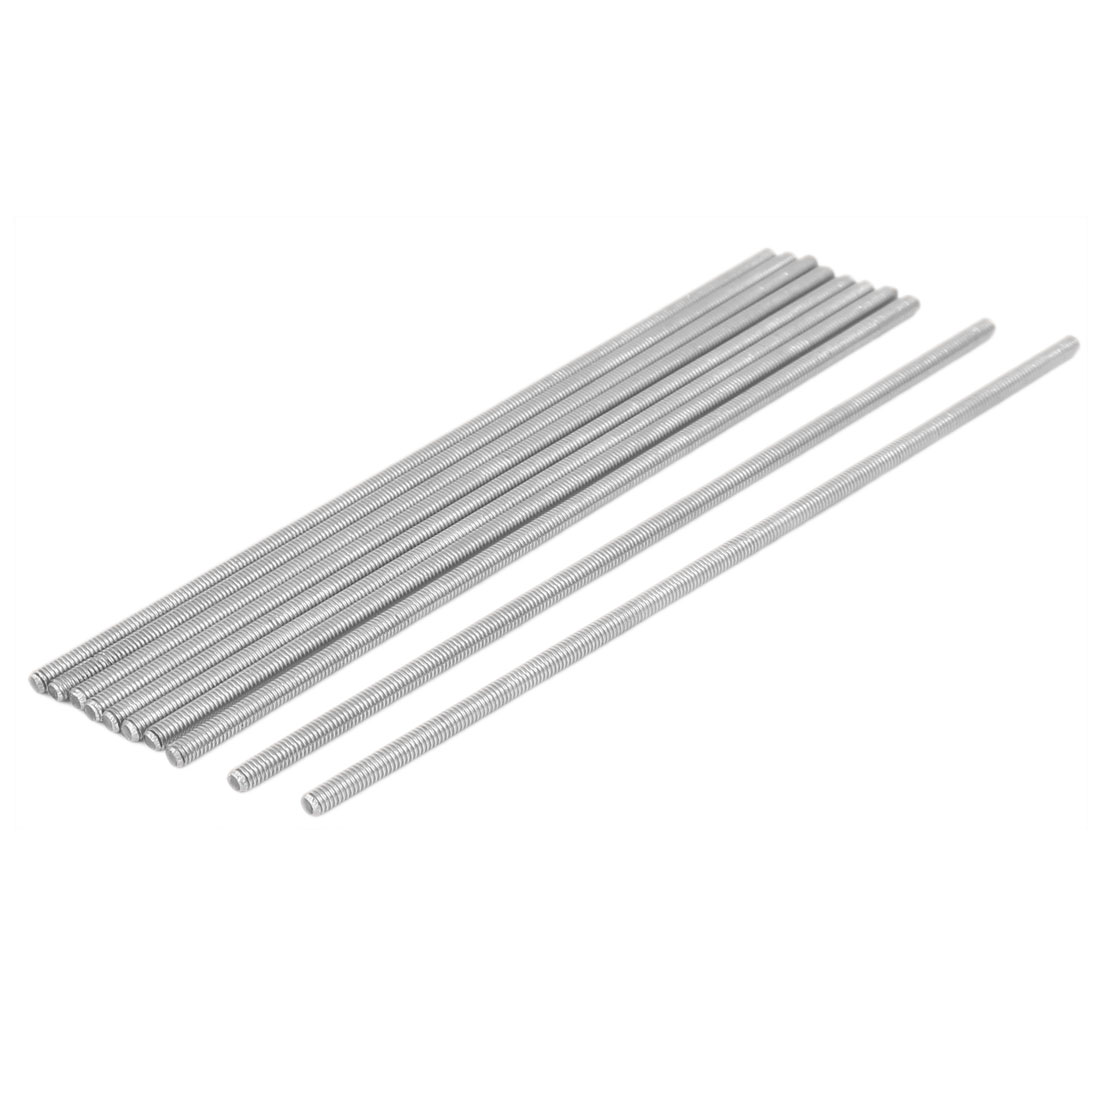 M4 x 160mm 304 Stainless Steel Fully Threaded Rod Bar Studs Hardware 10 Pcs